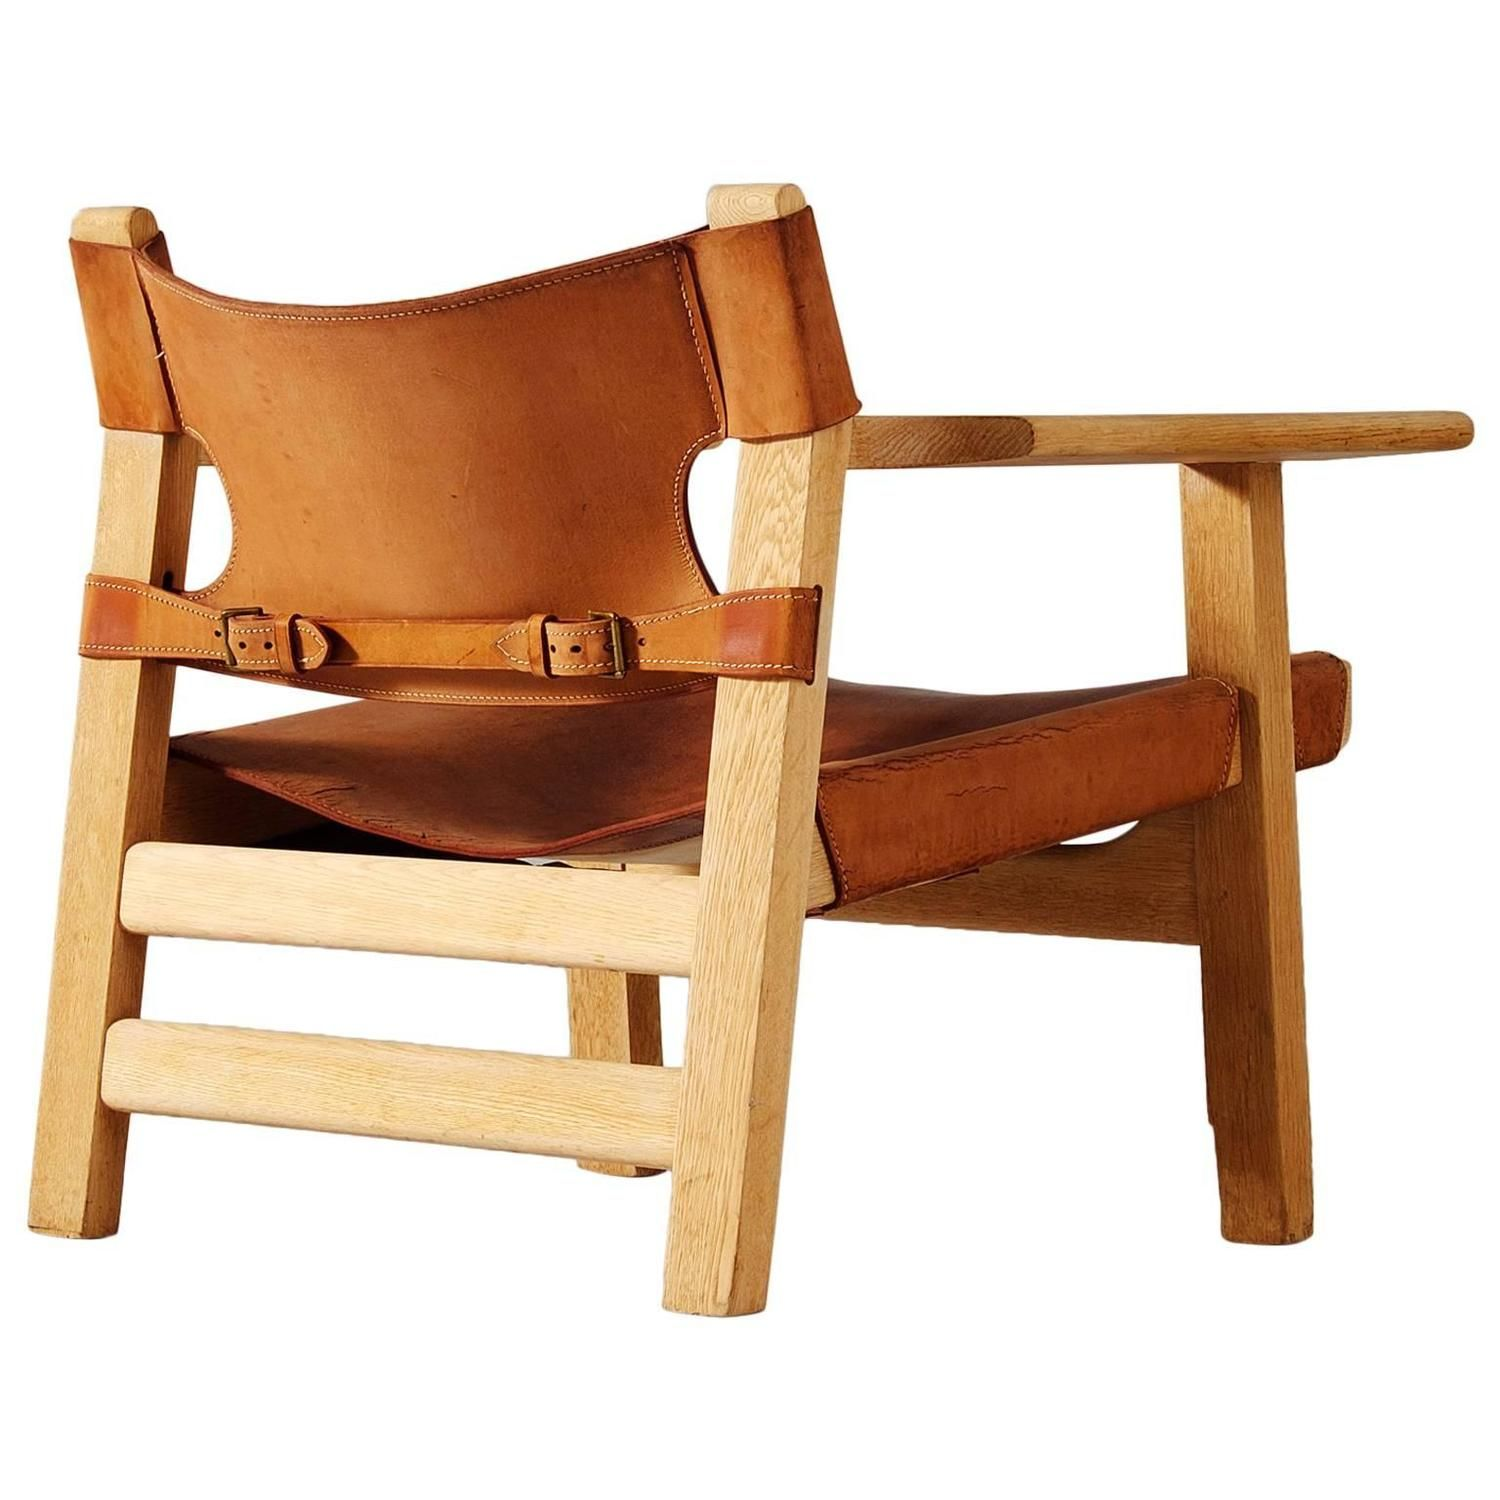 Børge Mogensen 'Spanish Chair' in Solid Oak and Cognac Leather is part of Spanish chairs - For Sale on 1stdibs  'Spanish Chair' in solid oak and cognac leather by Børge Mogensen  Manufactured by Fredericia Furniture, Denmark, circa 1950  This design by Borge Mogensen